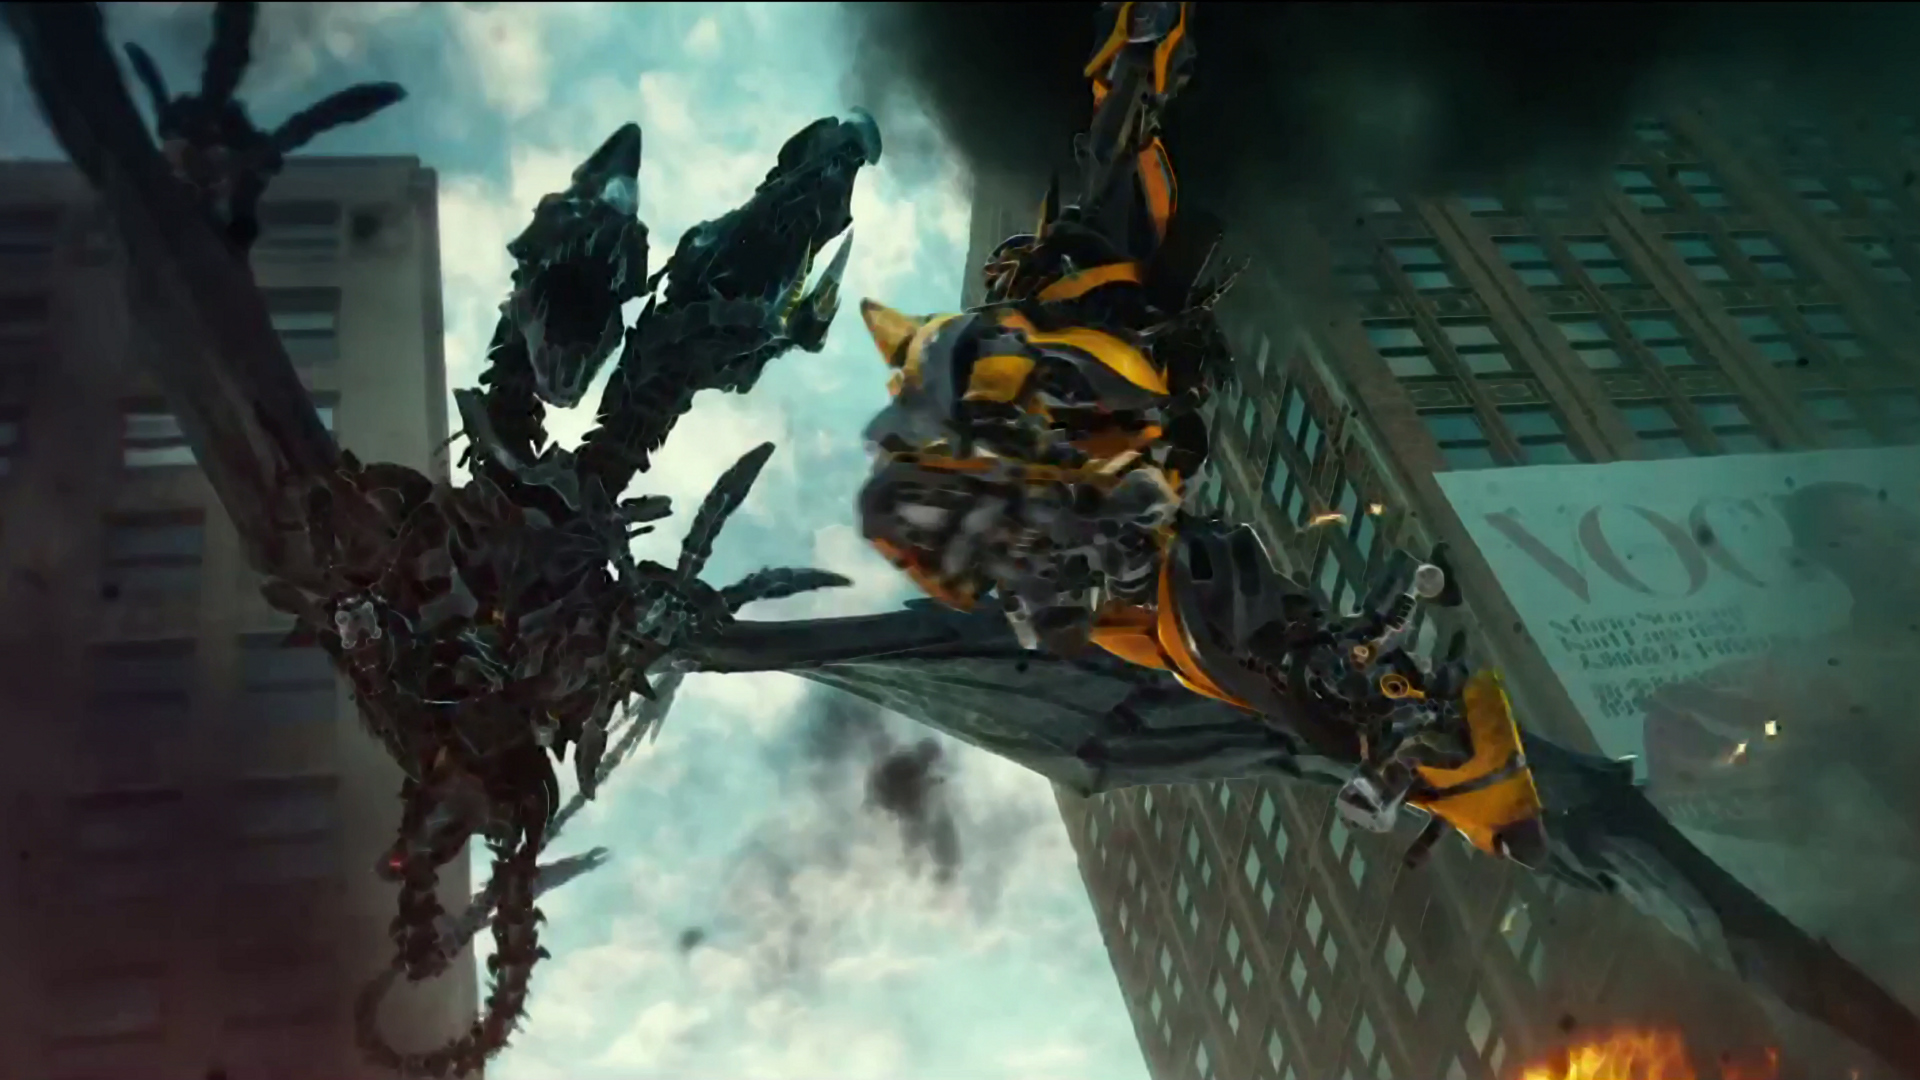 transformers 4 age of extinction 5l wallpaper hd